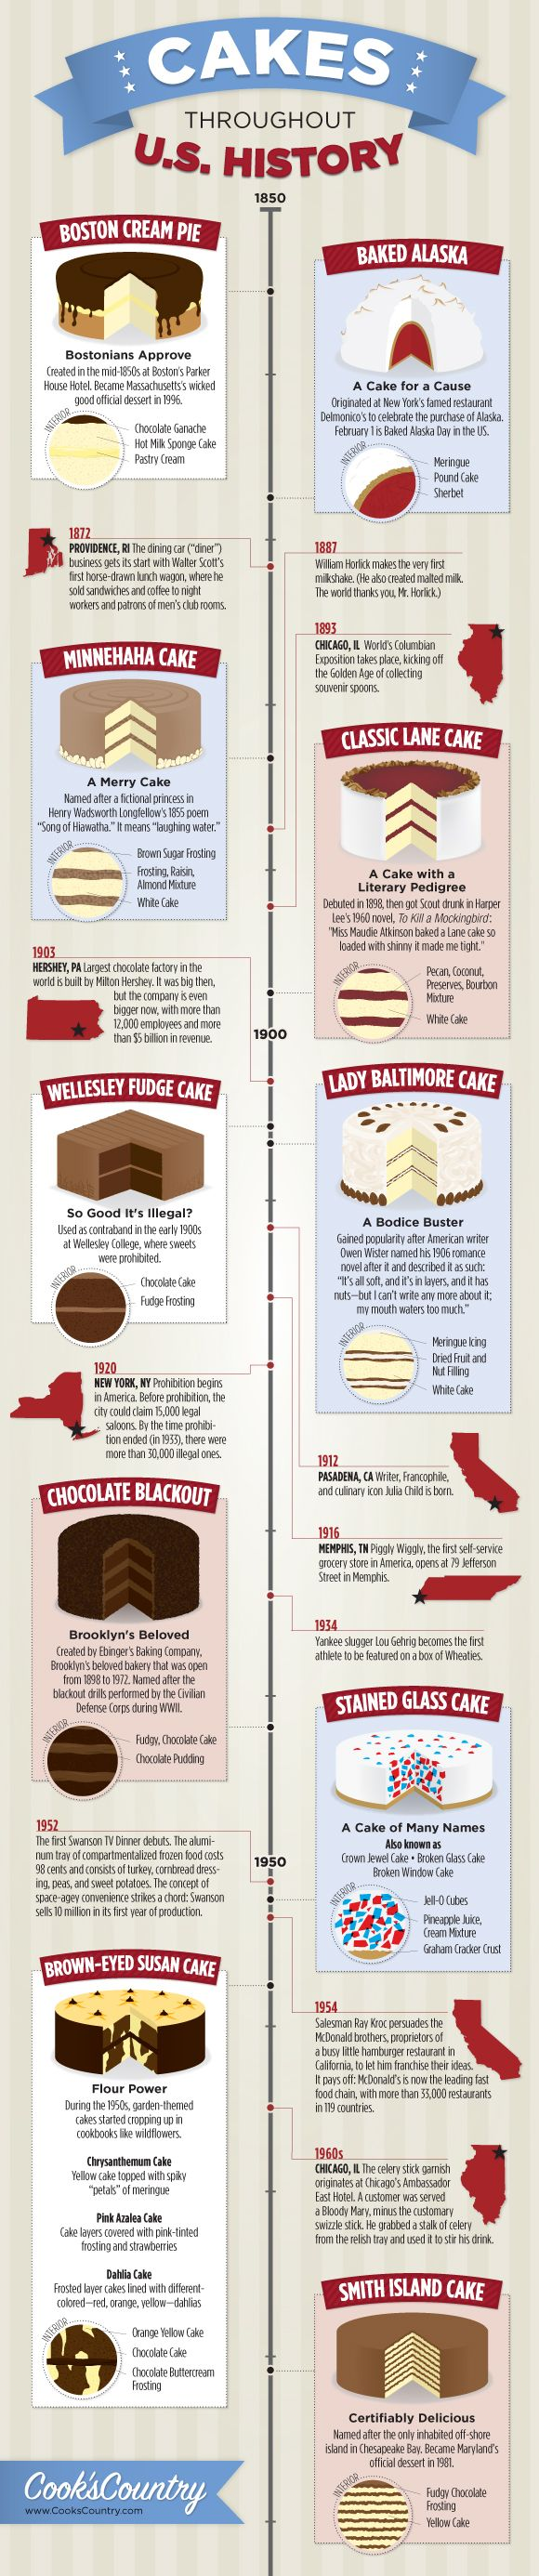 439 best american history images on pinterest teaching social cakes throughout us history infographic designed by jay layman for cooks country http robcynllc Image collections